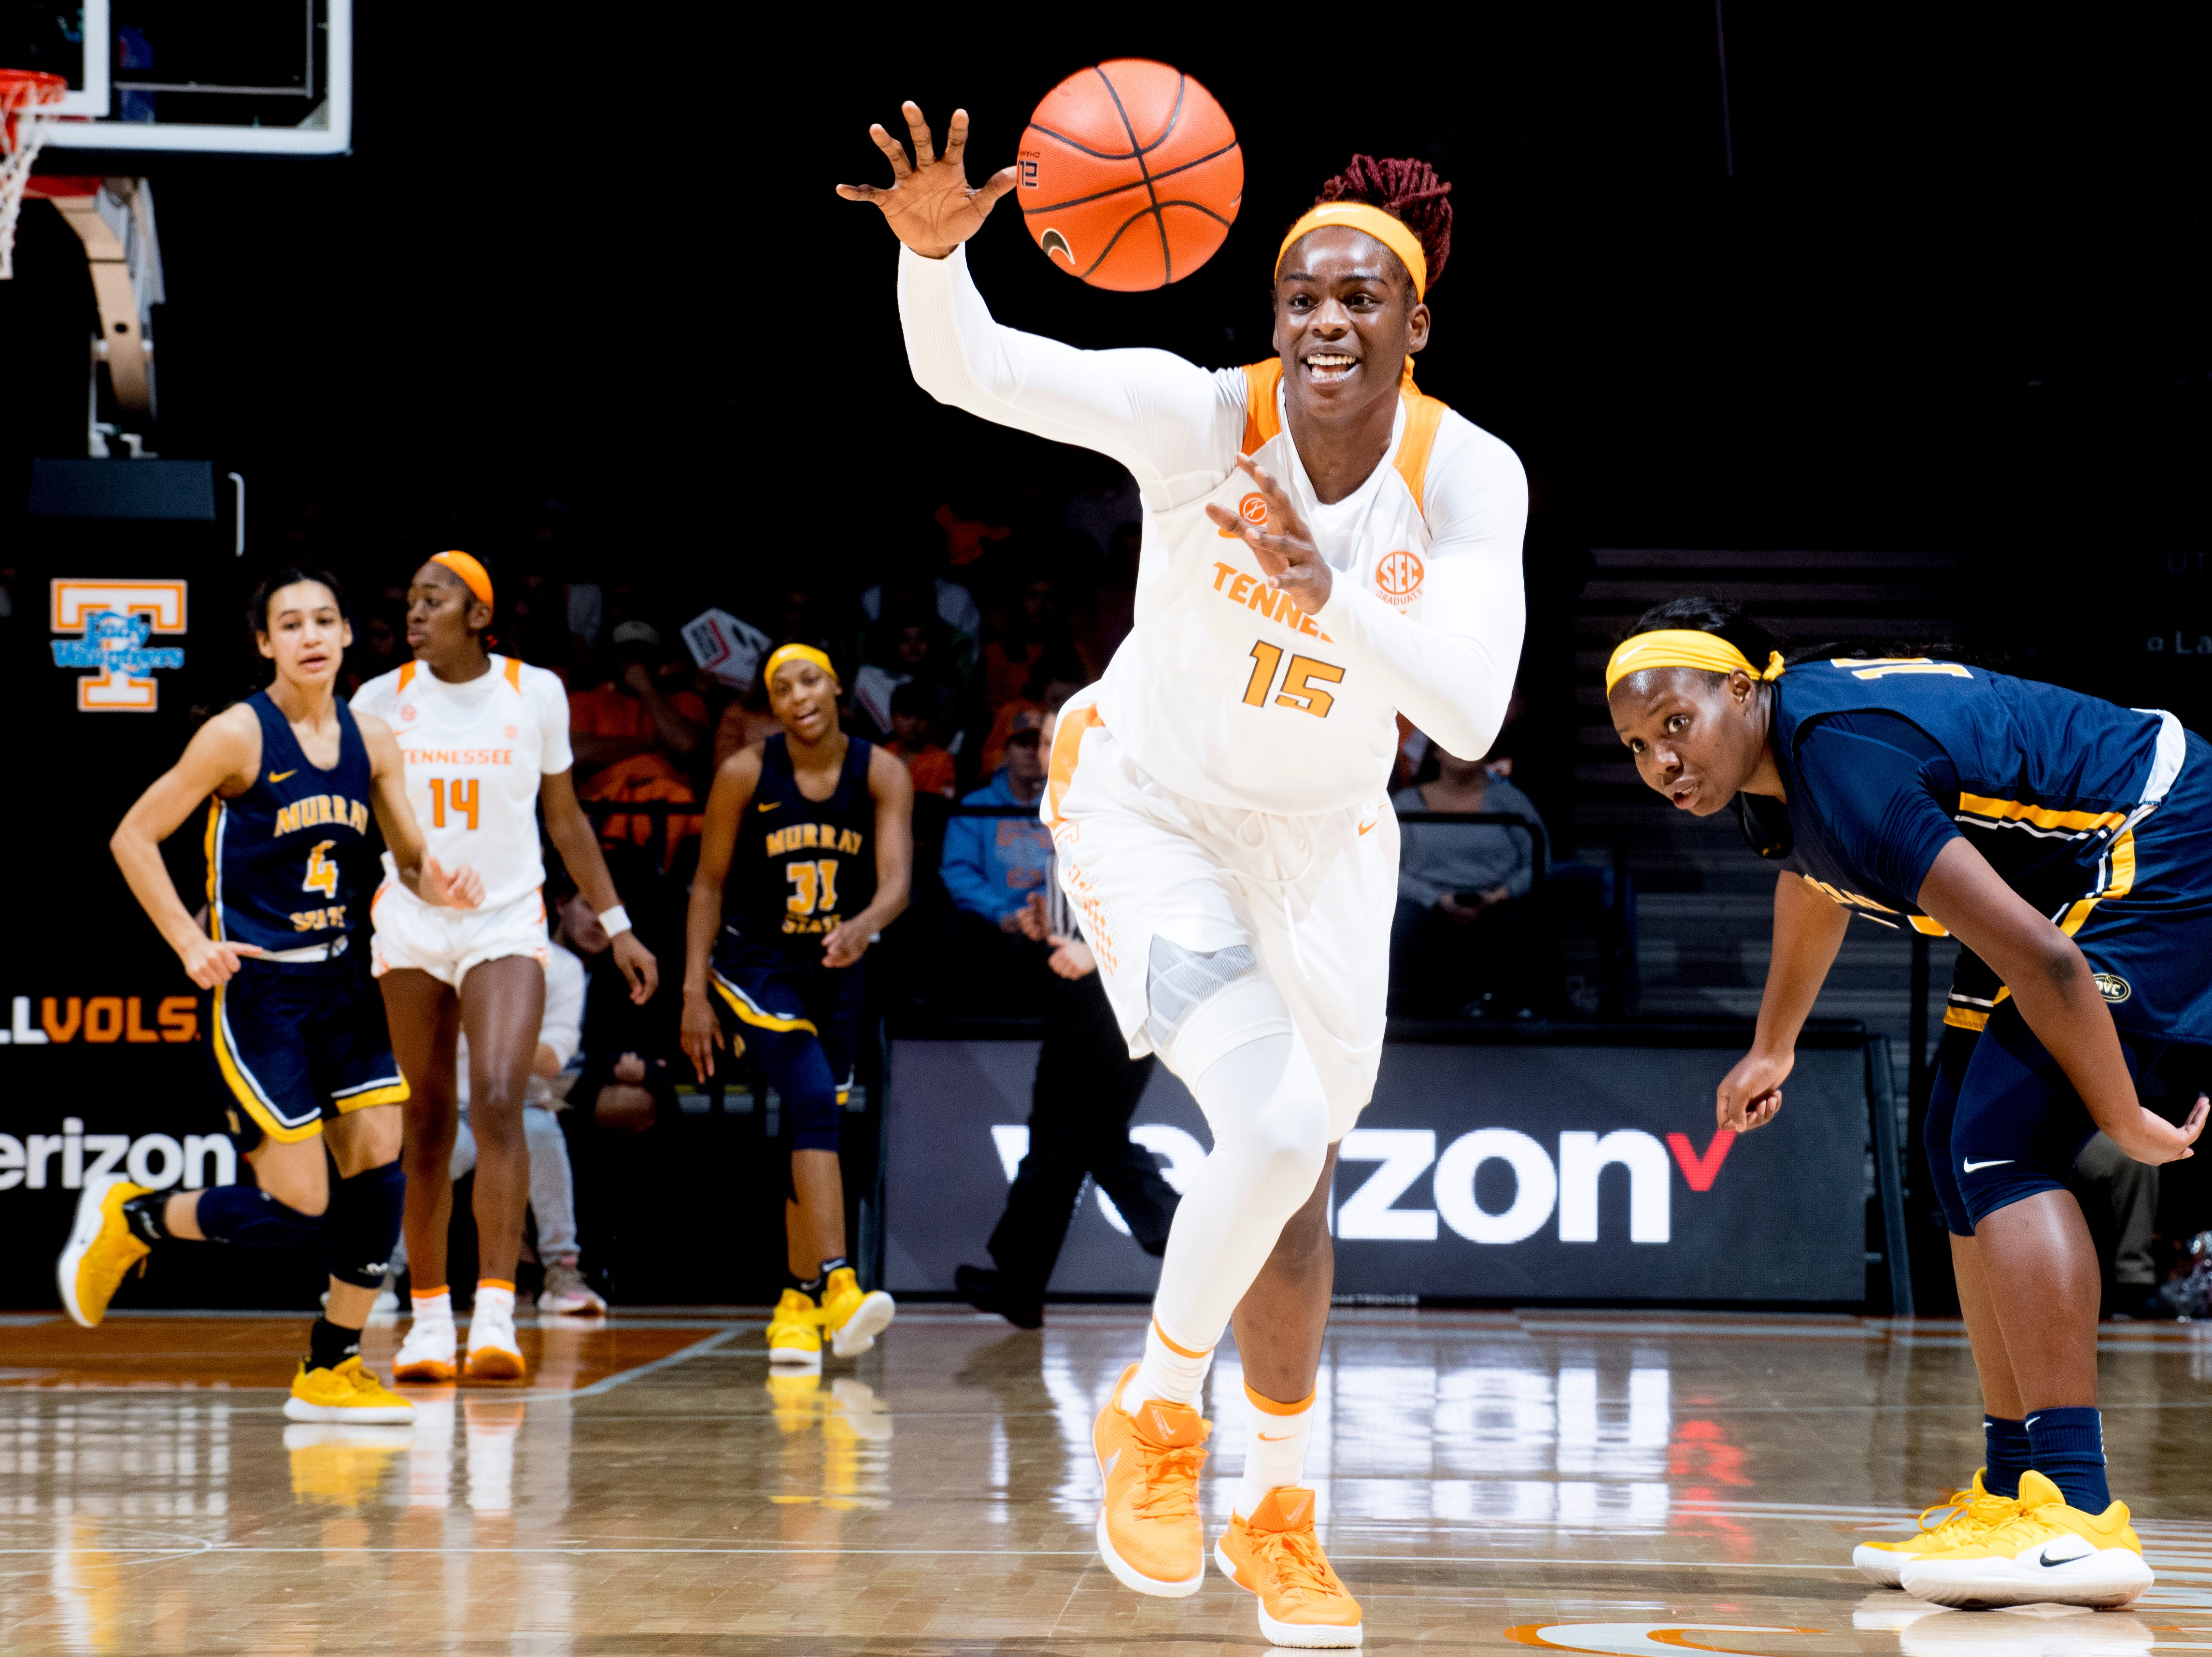 Tennessee forward Cheridene Green (15) takes possession of a ball intended for Murray State guard/forward Paige Barrett (11) during a game between the Tennessee Lady Vols and Murray State at Thompson-Boling Arena in Knoxville, Tennessee on Friday, December 28, 2018.